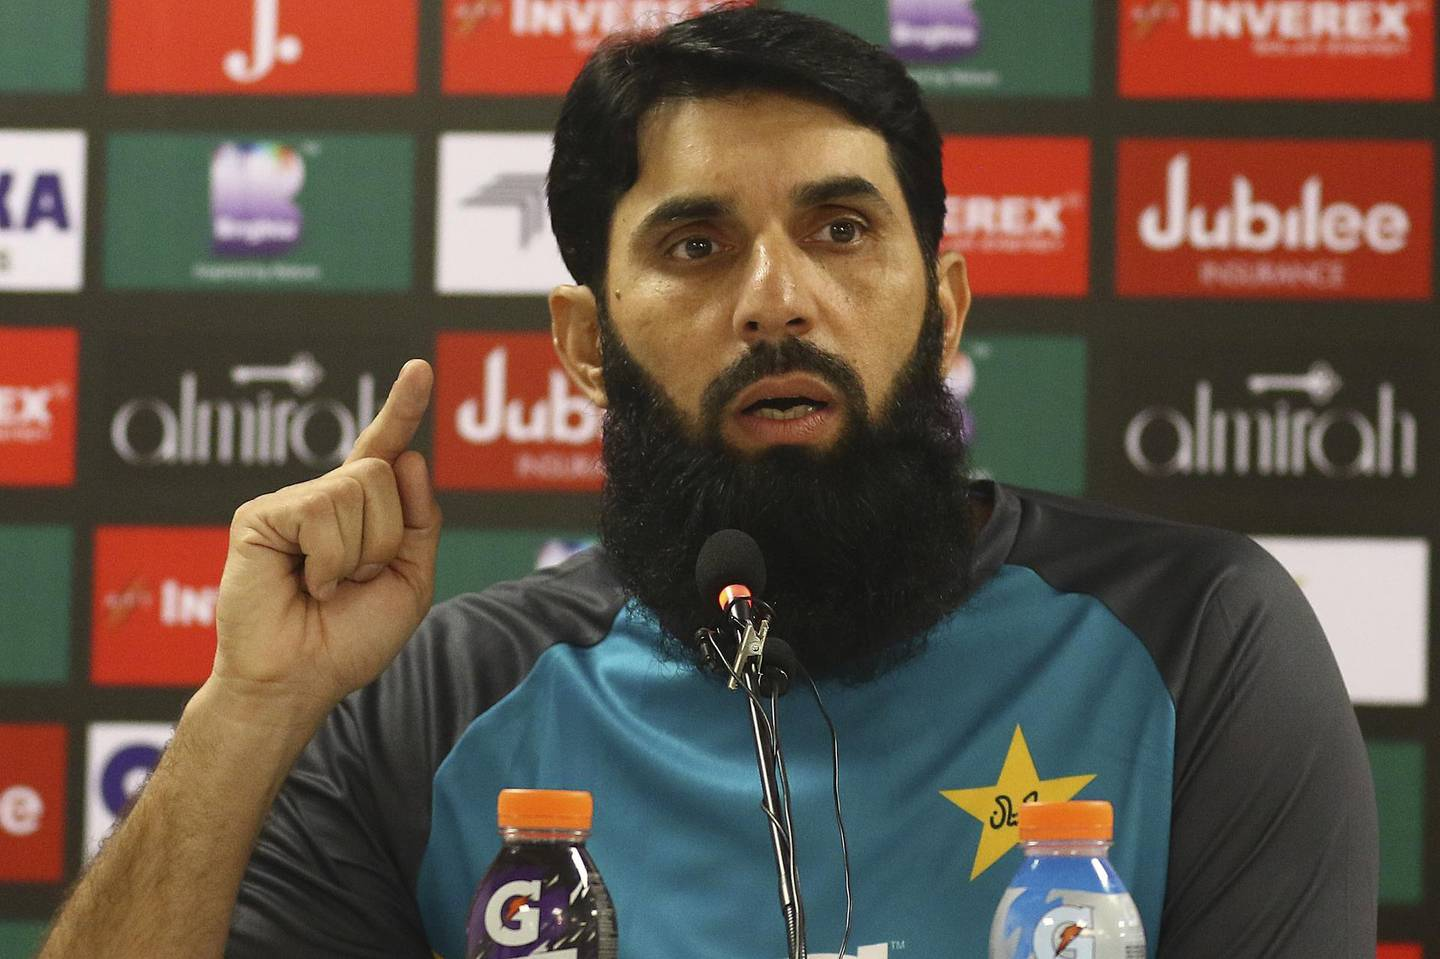 Pakistan's head coach and chief selector Misbah-ul-Haq speaks to reporters in Karachi, Pakistan, Wednesday, Sept. 25, 2019. Misbah said Sri Lanka's top players should have come for the limited-overs series in Pakistan after being assured of head-of-state-like security by the government. (AP Photo/Fareed Khan)